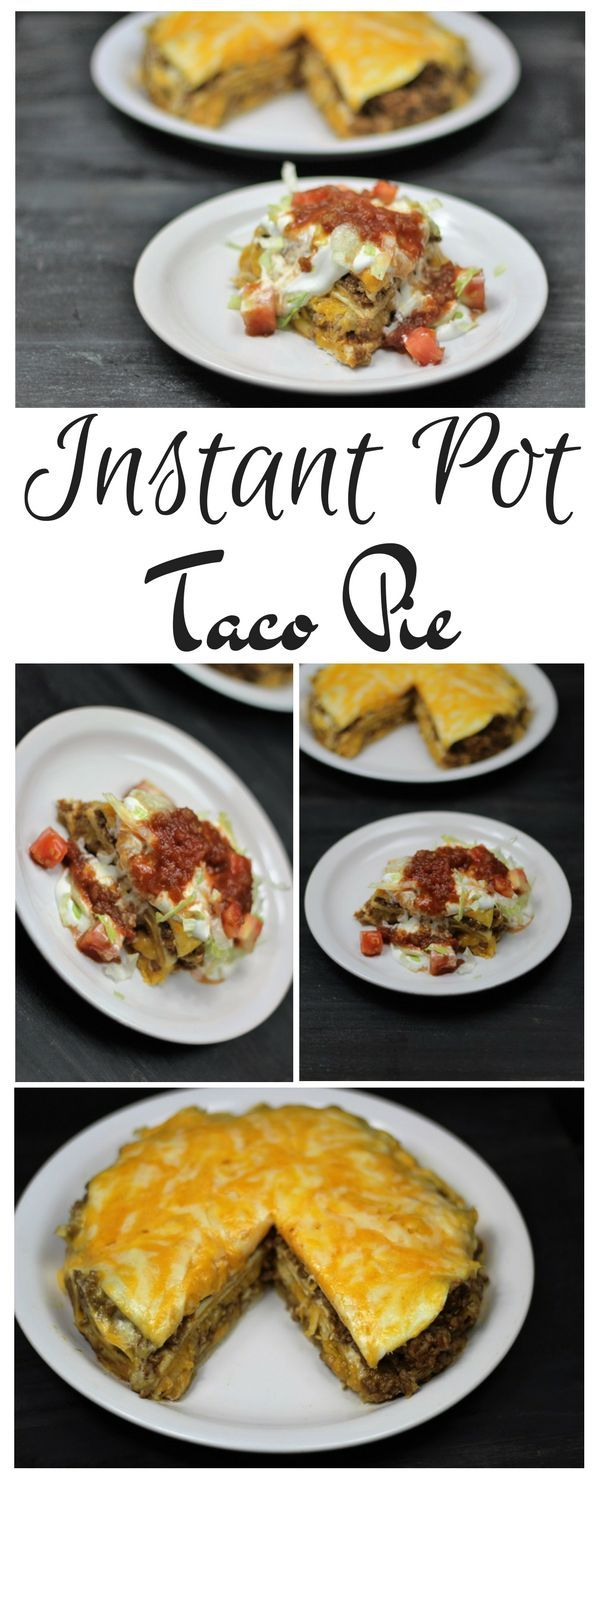 Instant Pot Taco Pie is my go to super quick and easy dinner! We have it at least once a week. Our favorite things to top it with is Doritos, sour cream and salsa.